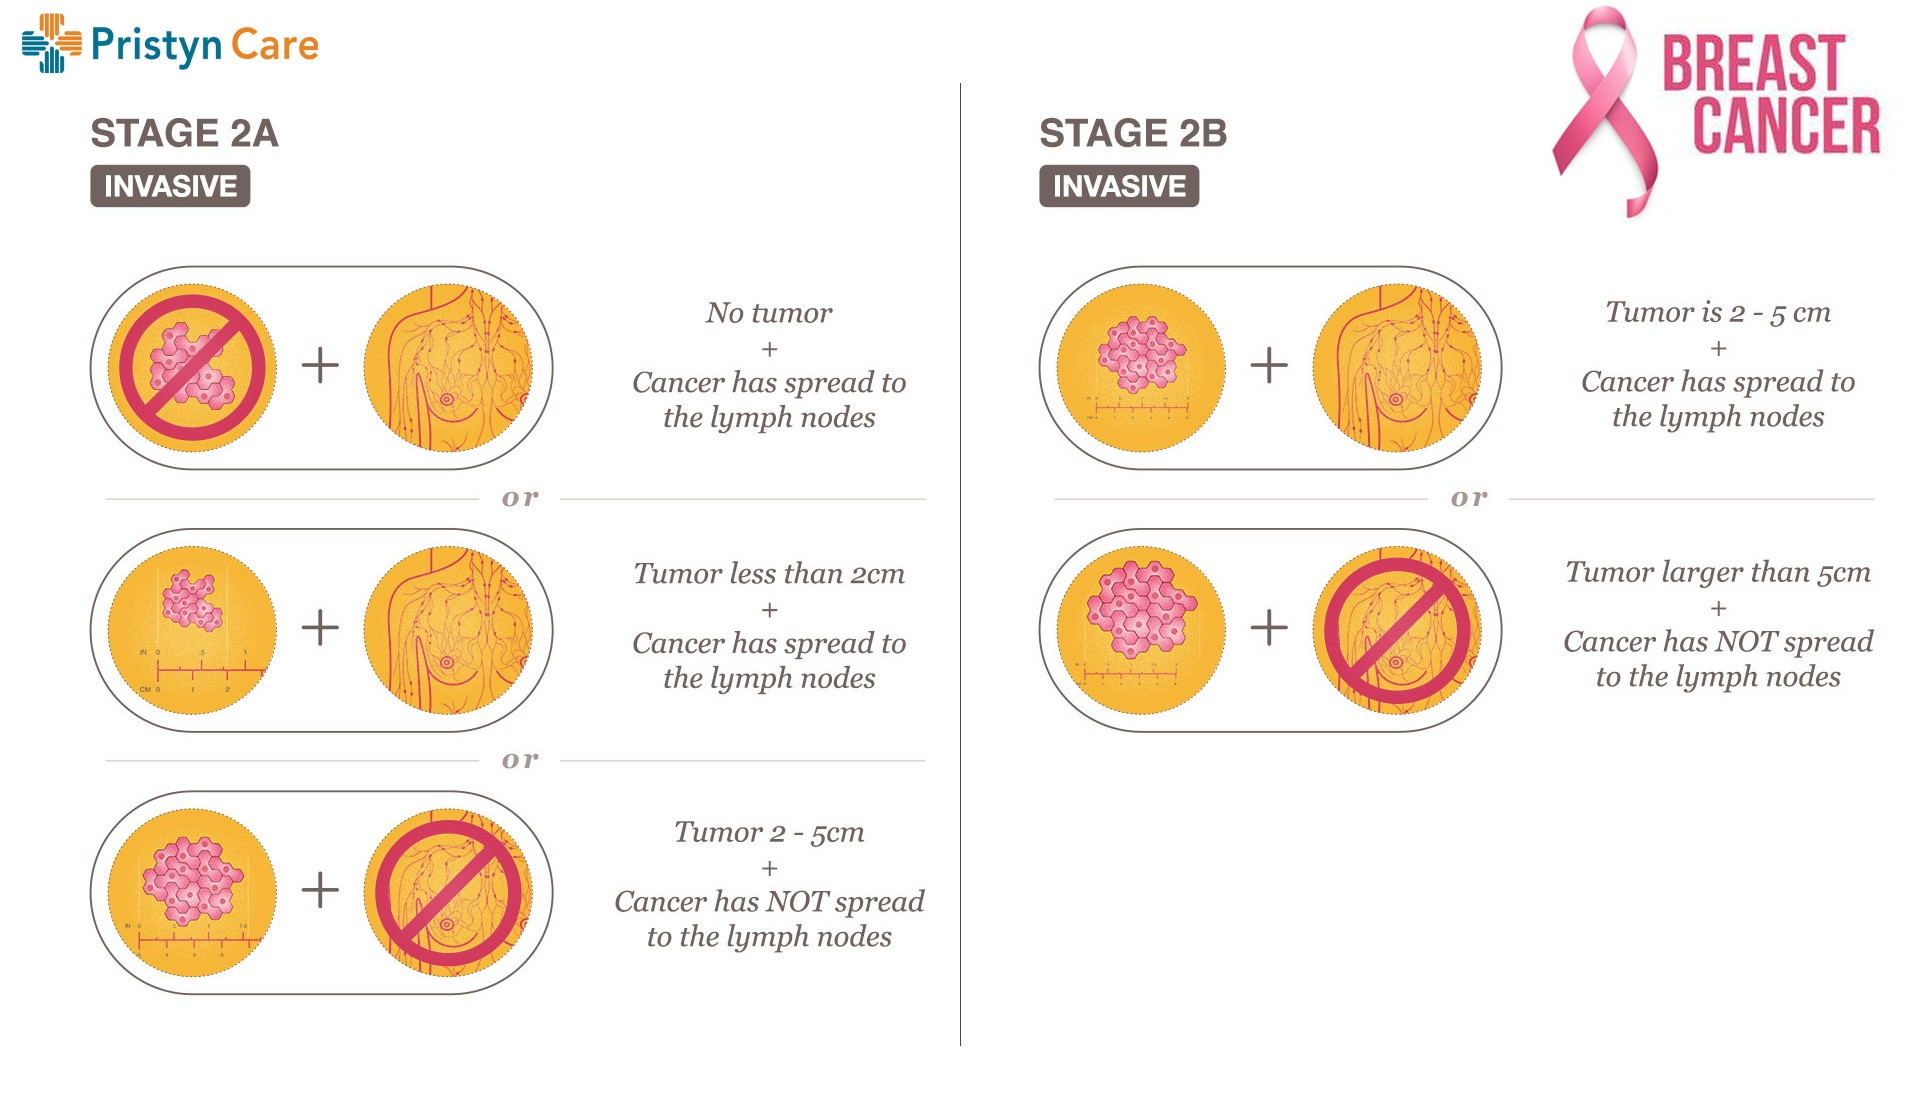 stage 2 of breast cancer